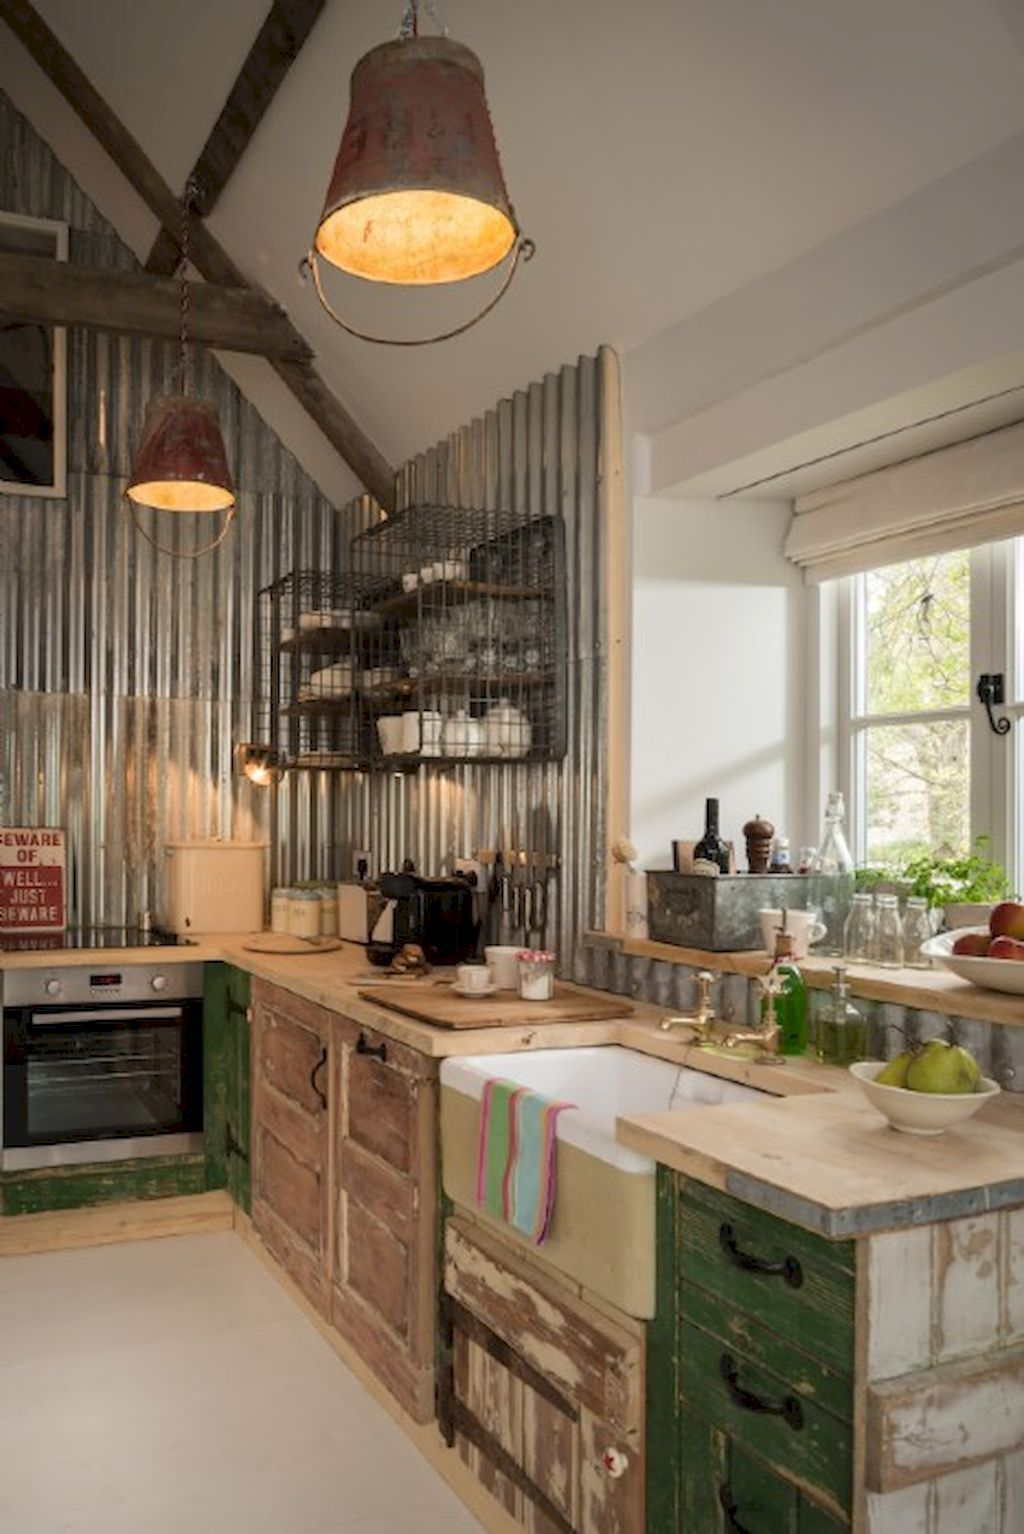 44 wonderful ideas to design your rustic kitchen 34 rustic farmhouse kitchen cabin kitchens on farmhouse kitchen cabinets id=75304